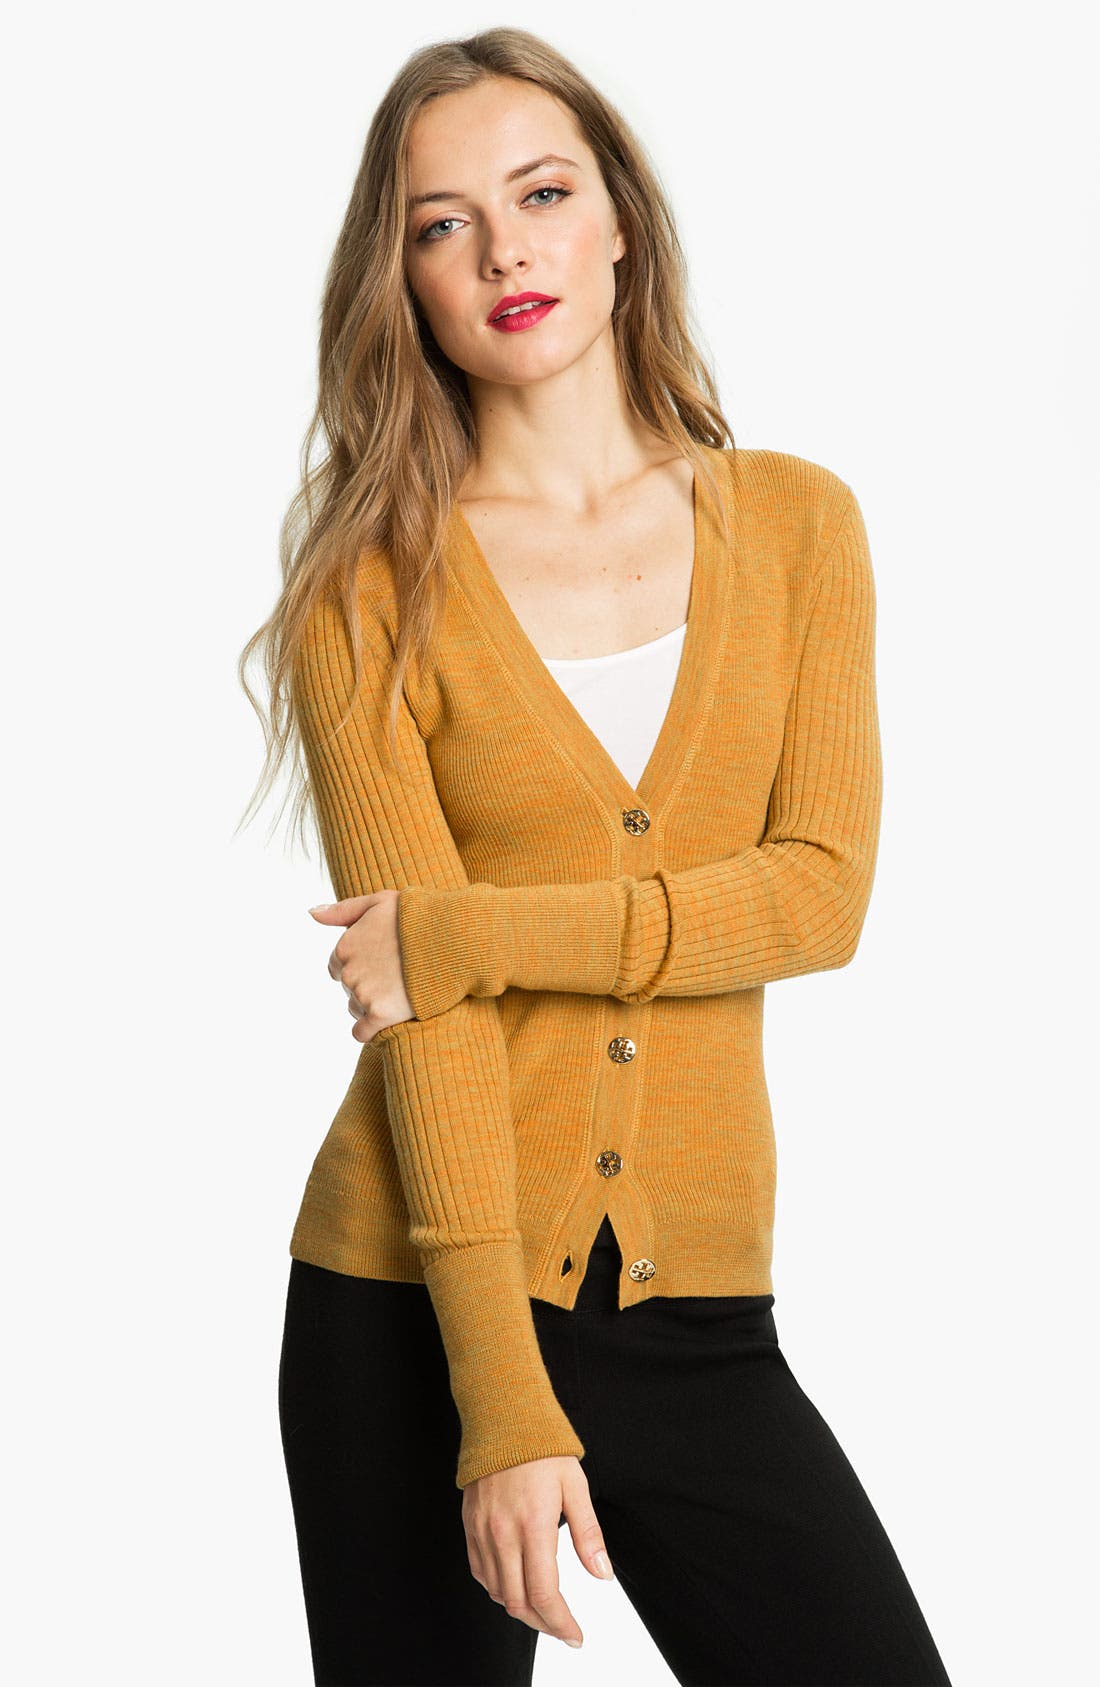 Alternate Image 1 Selected - Tory Burch 'Shrunken Simone' Cardigan